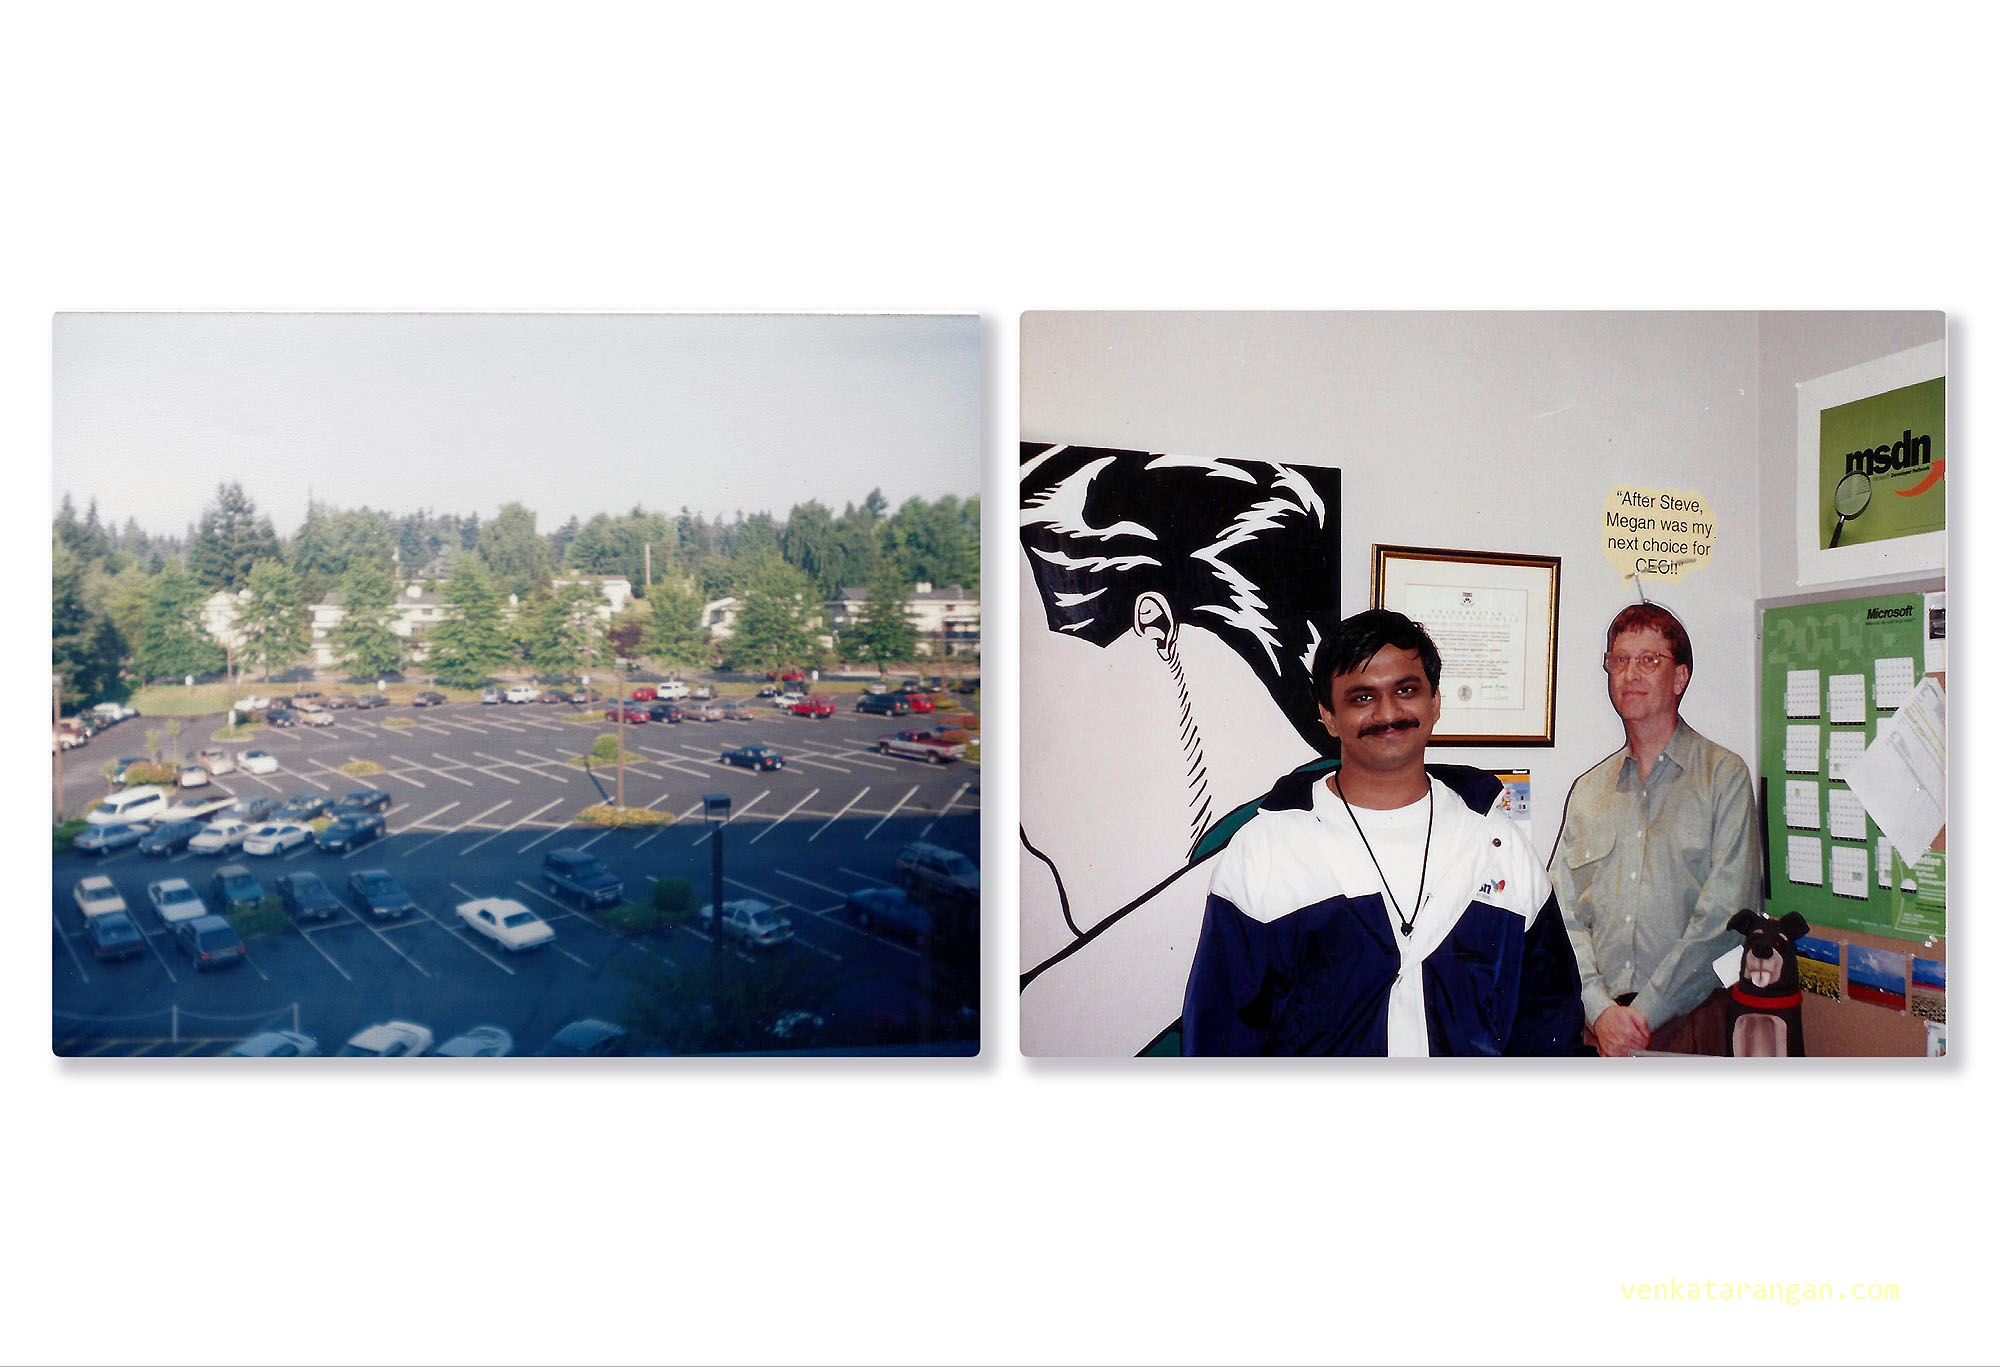 (Left) View from one of the offices in Microsoft Campus, Redmond, Washington - 1999. (Right) Inside view of a manager's office.